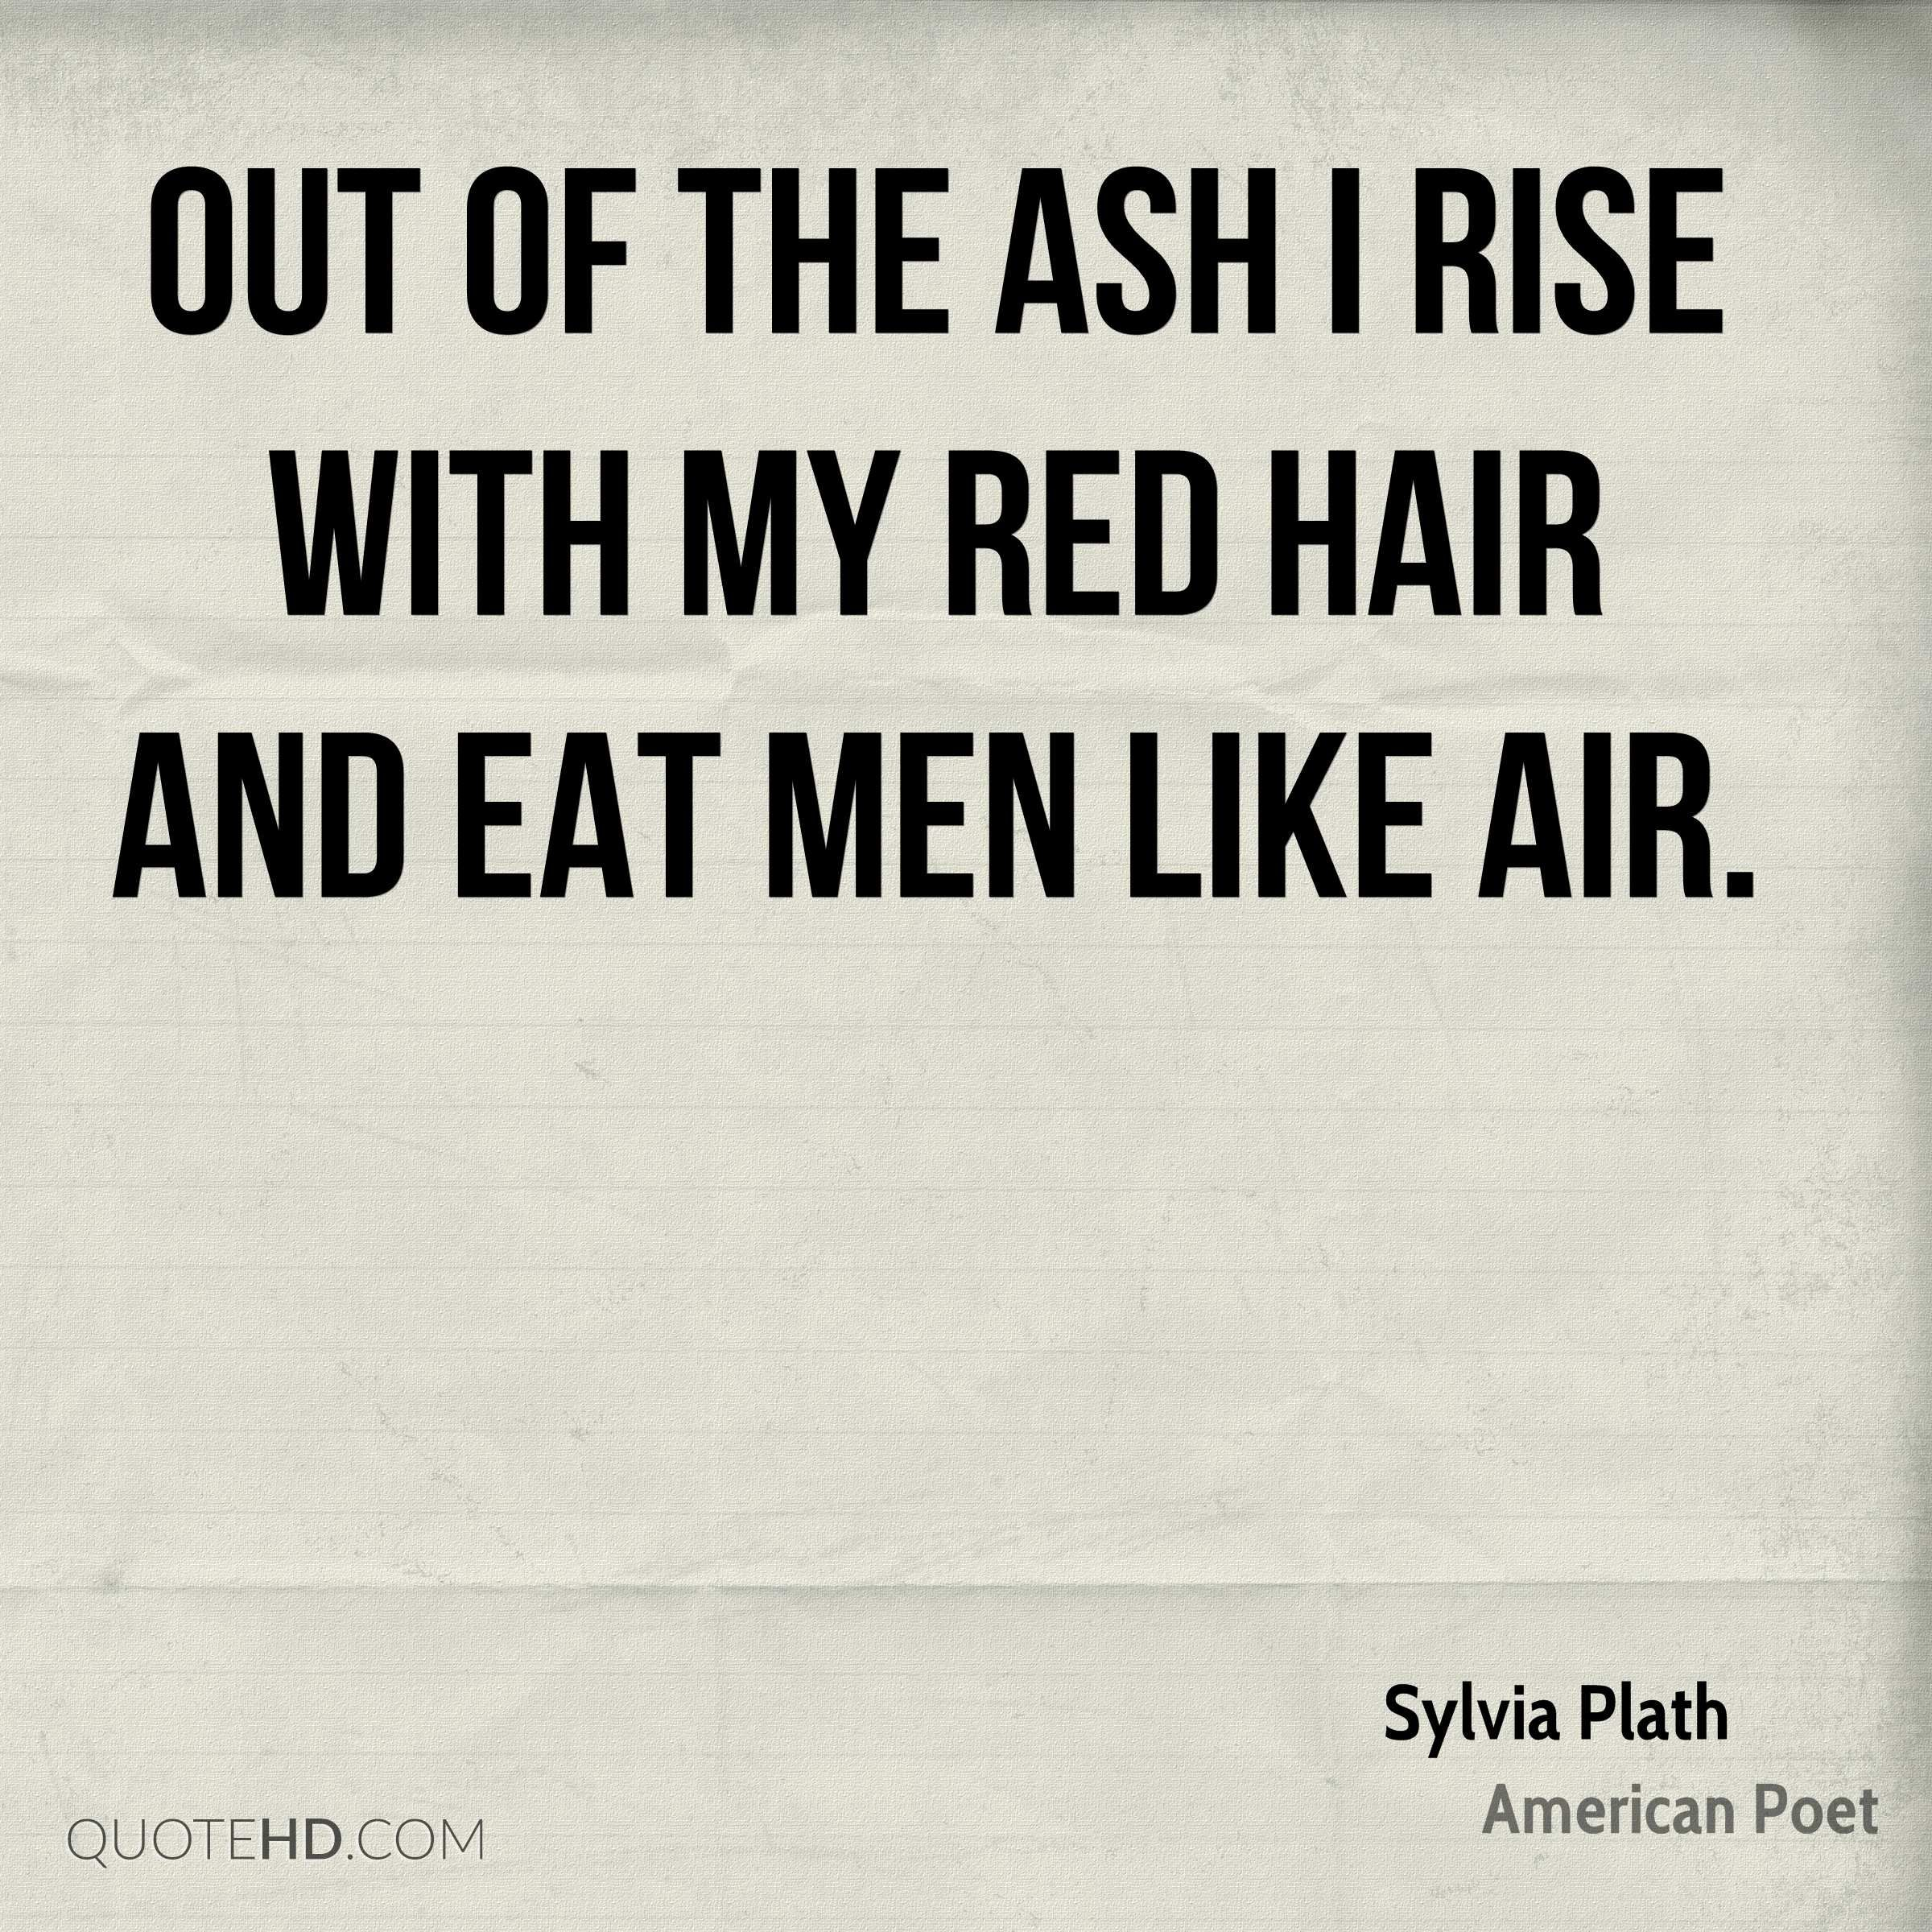 Sylvia Plath Love Quotes Fair Image Result For Sylvia Plath Quotes  Quotes  Pinterest  Sylvia